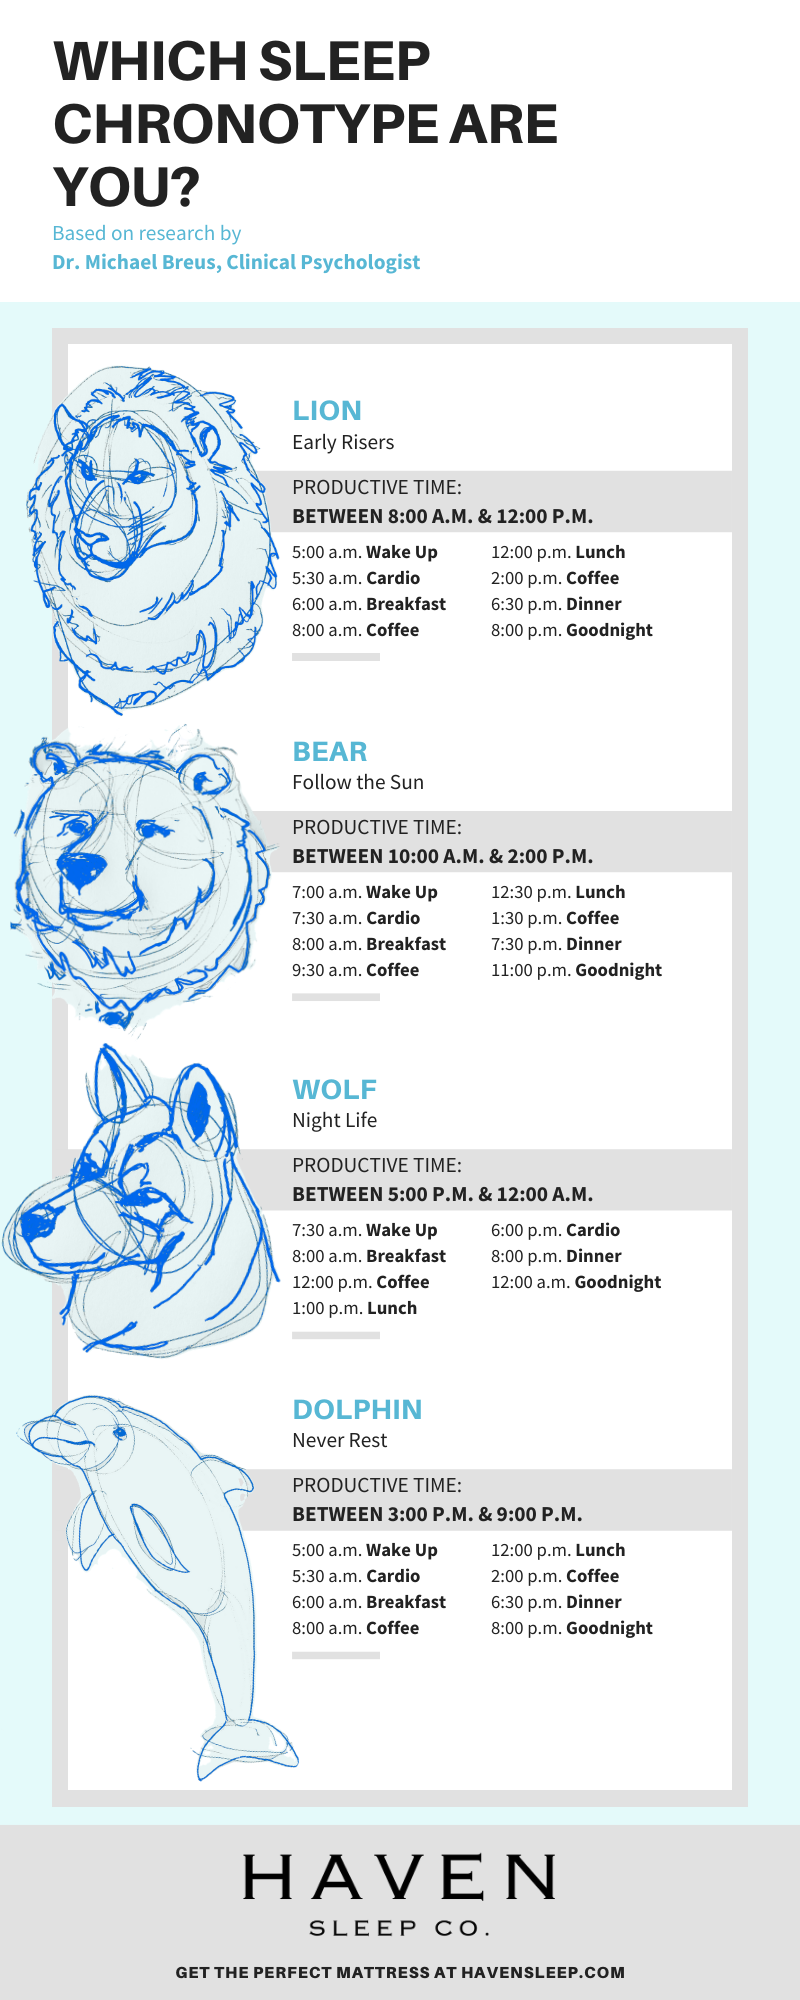 Optimal schedule for each sleep chronotype lion bear wolf dolphin peak productivity